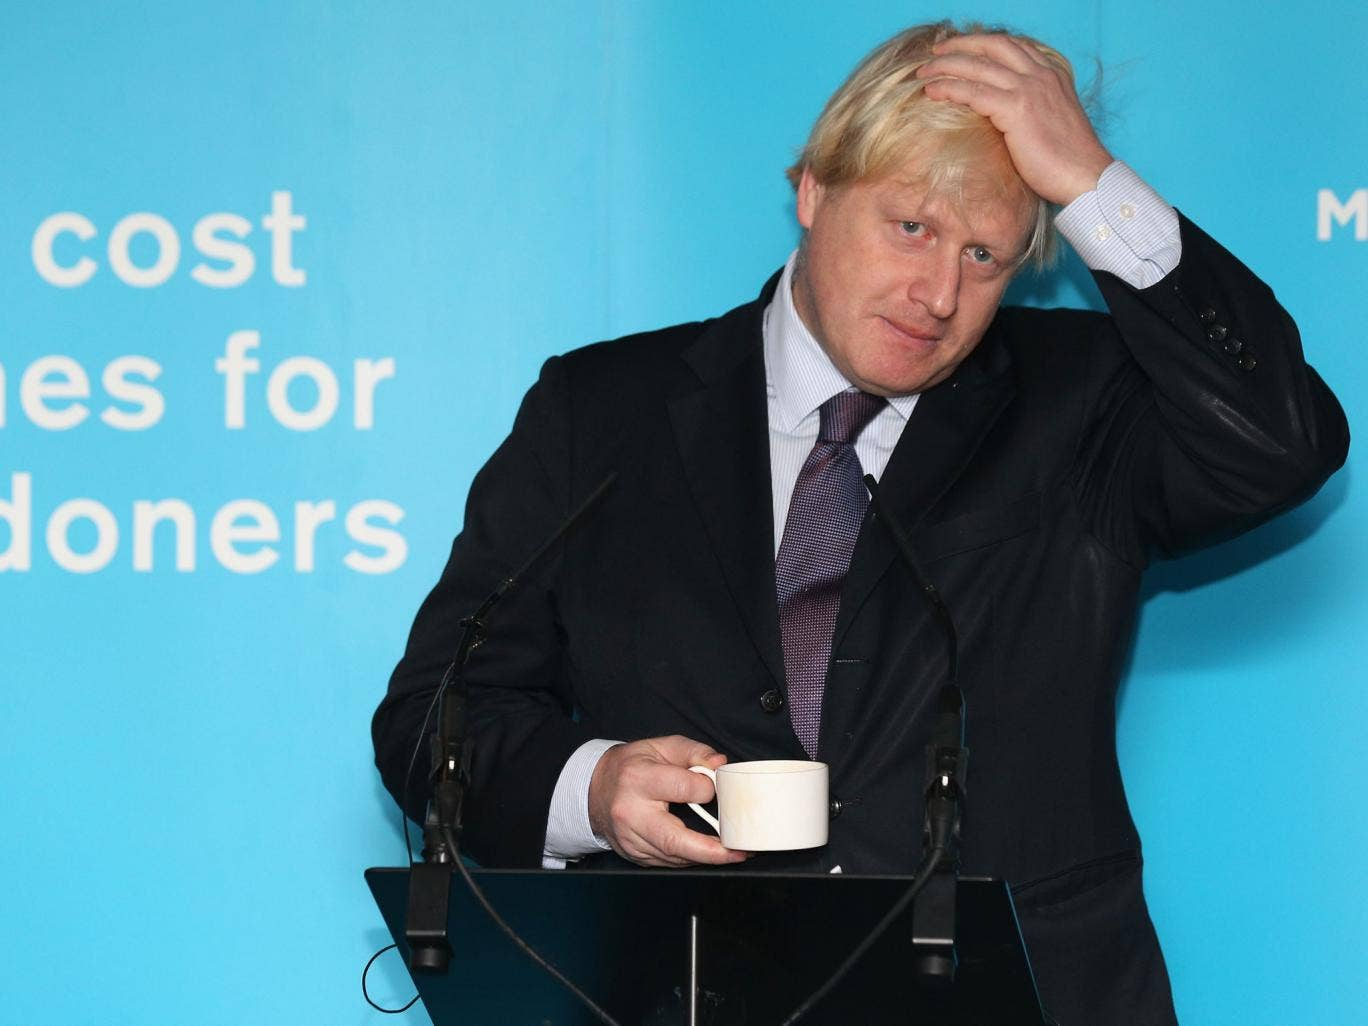 Boris Johnson's latest speech was hilarious, but potentially suicidal